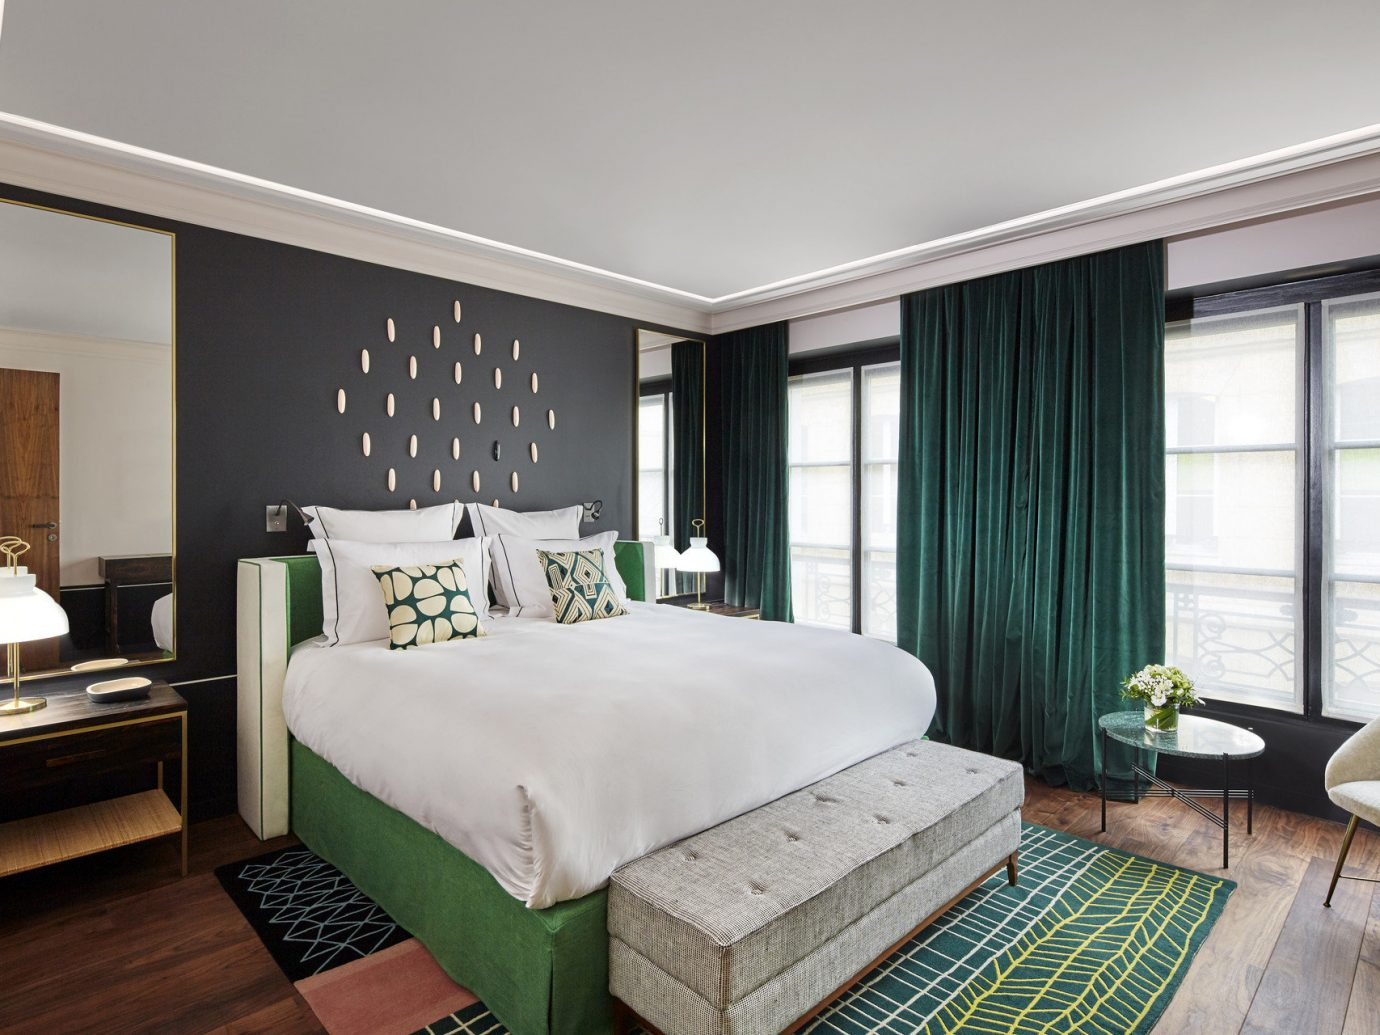 bed Bedroom Boutique Hotels Elegant extravagant fancy Hotels Luxury natural light regal sophisticated Style + Design stylish floor indoor wall window room property condominium living room estate Suite interior design real estate home furniture cottage hotel decorated